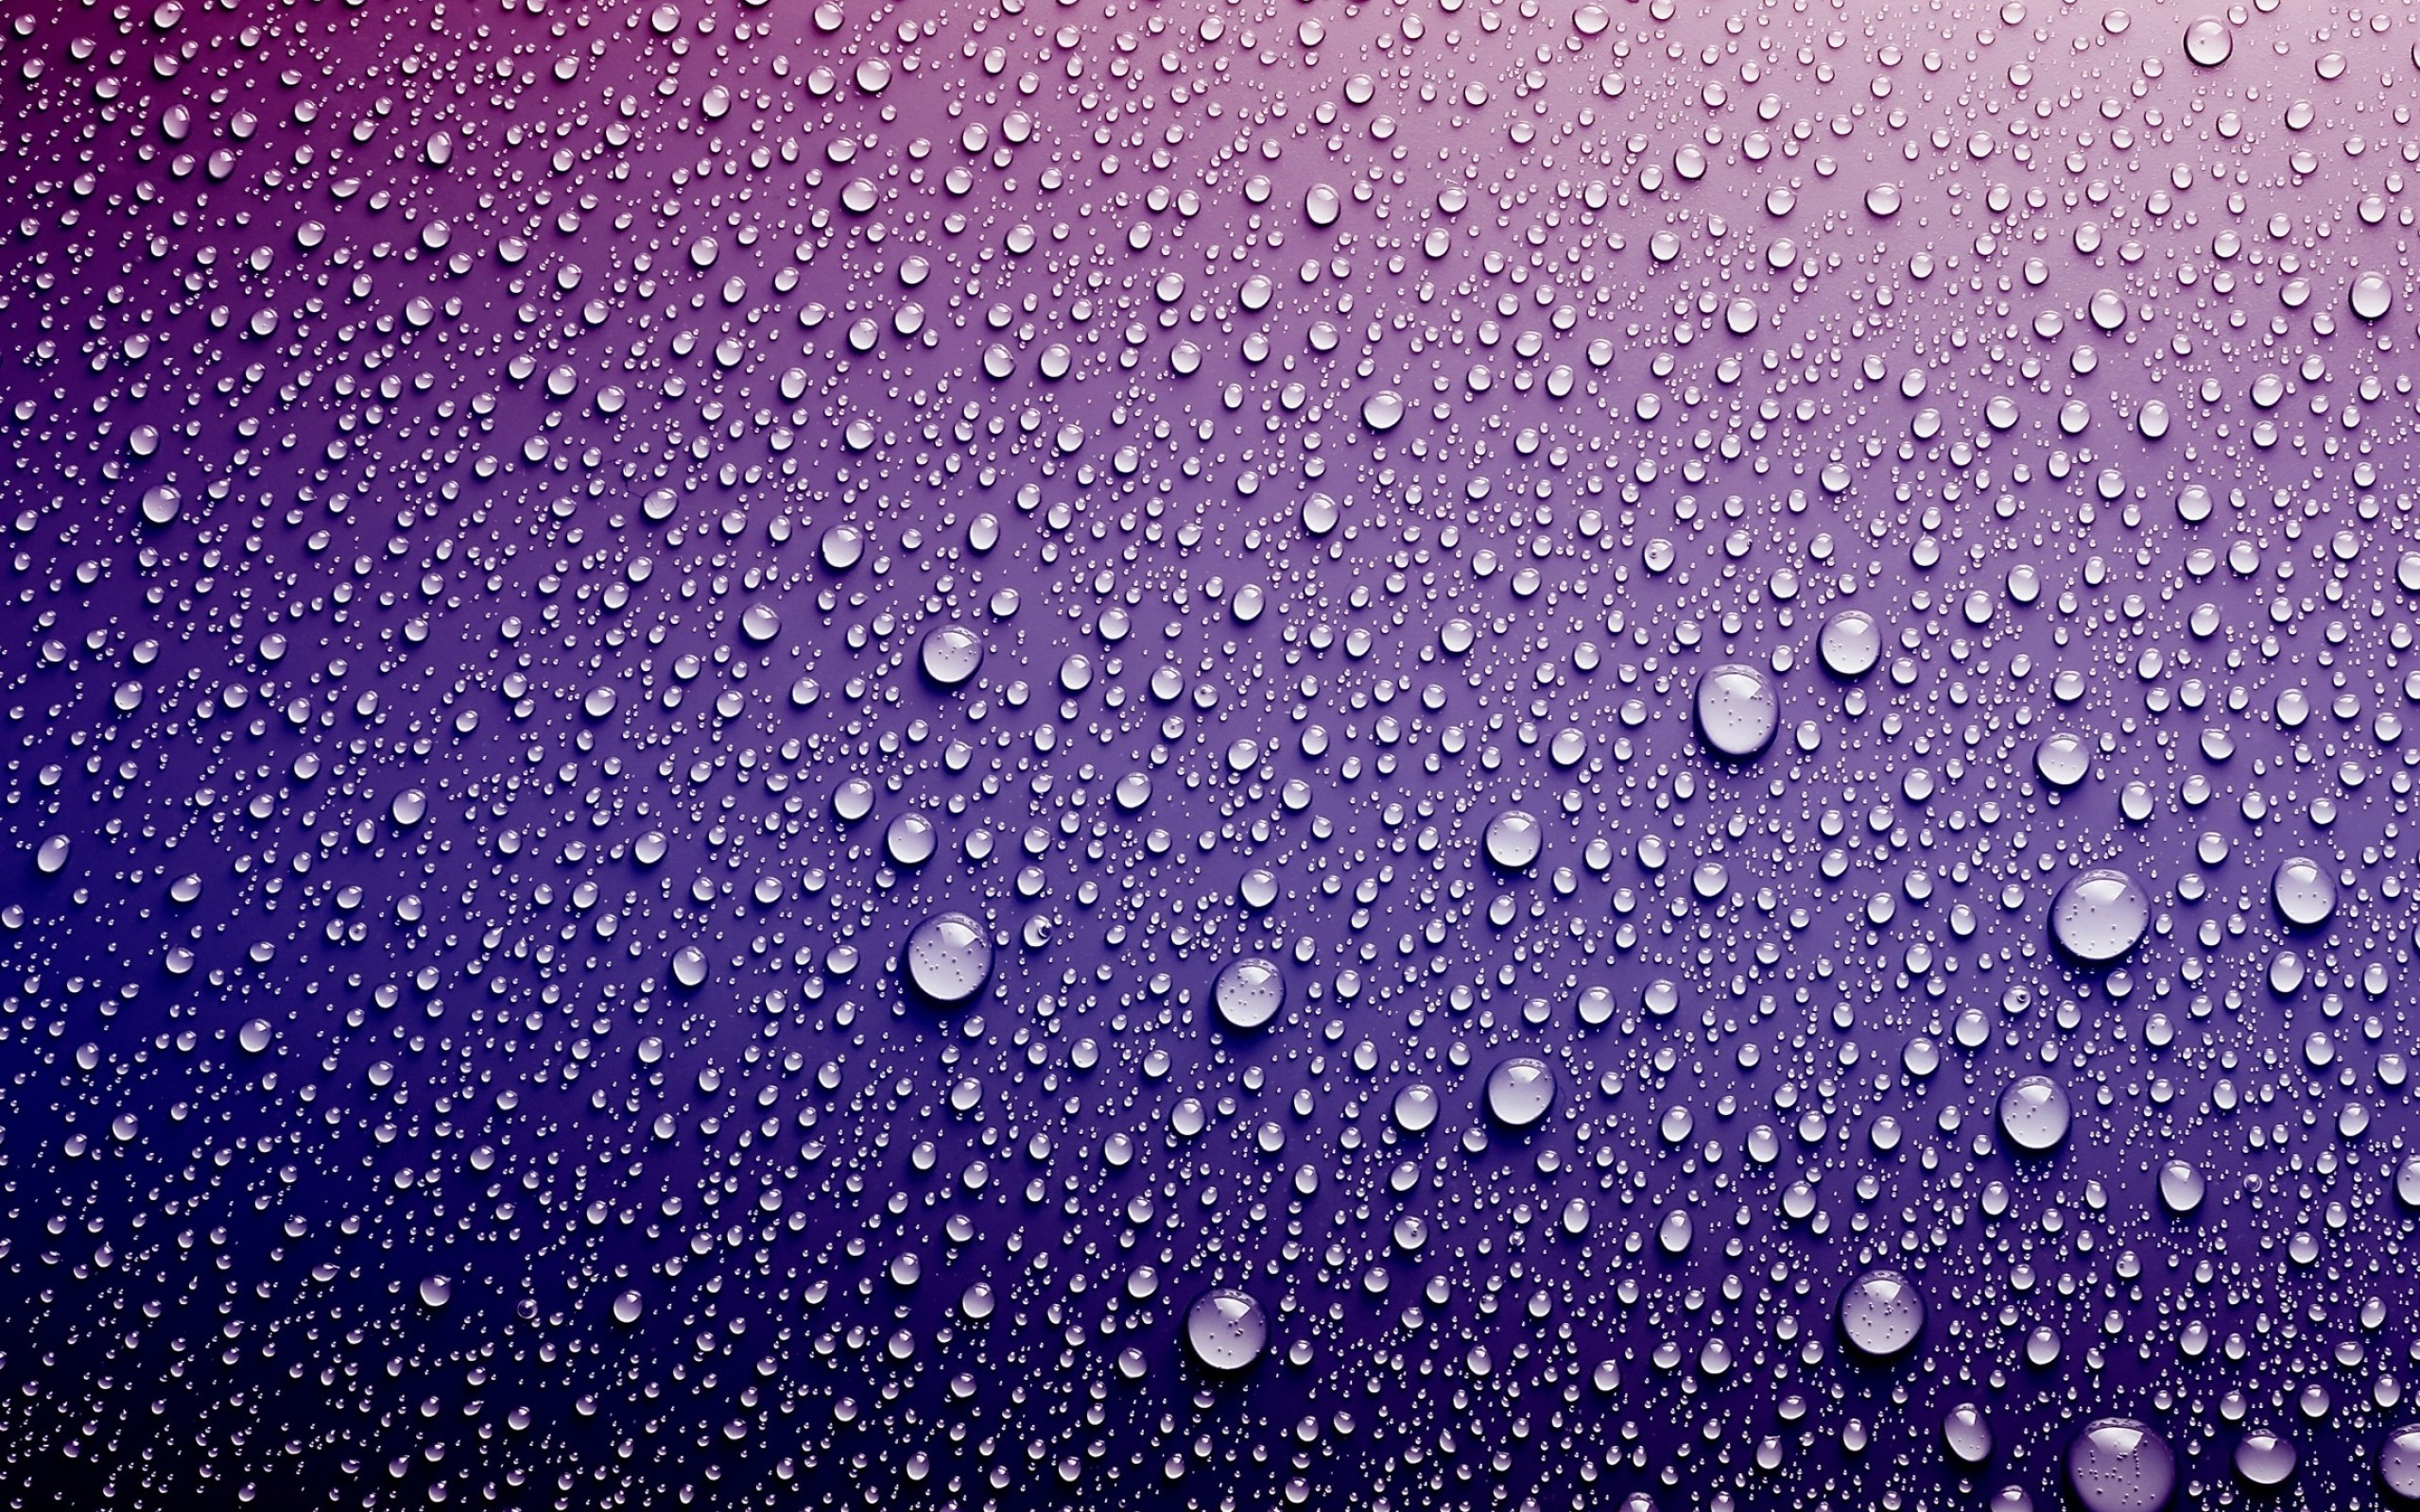 Background Beautiful Water Drops Texture Pink Purple Shade Wallpaper 2560x1600